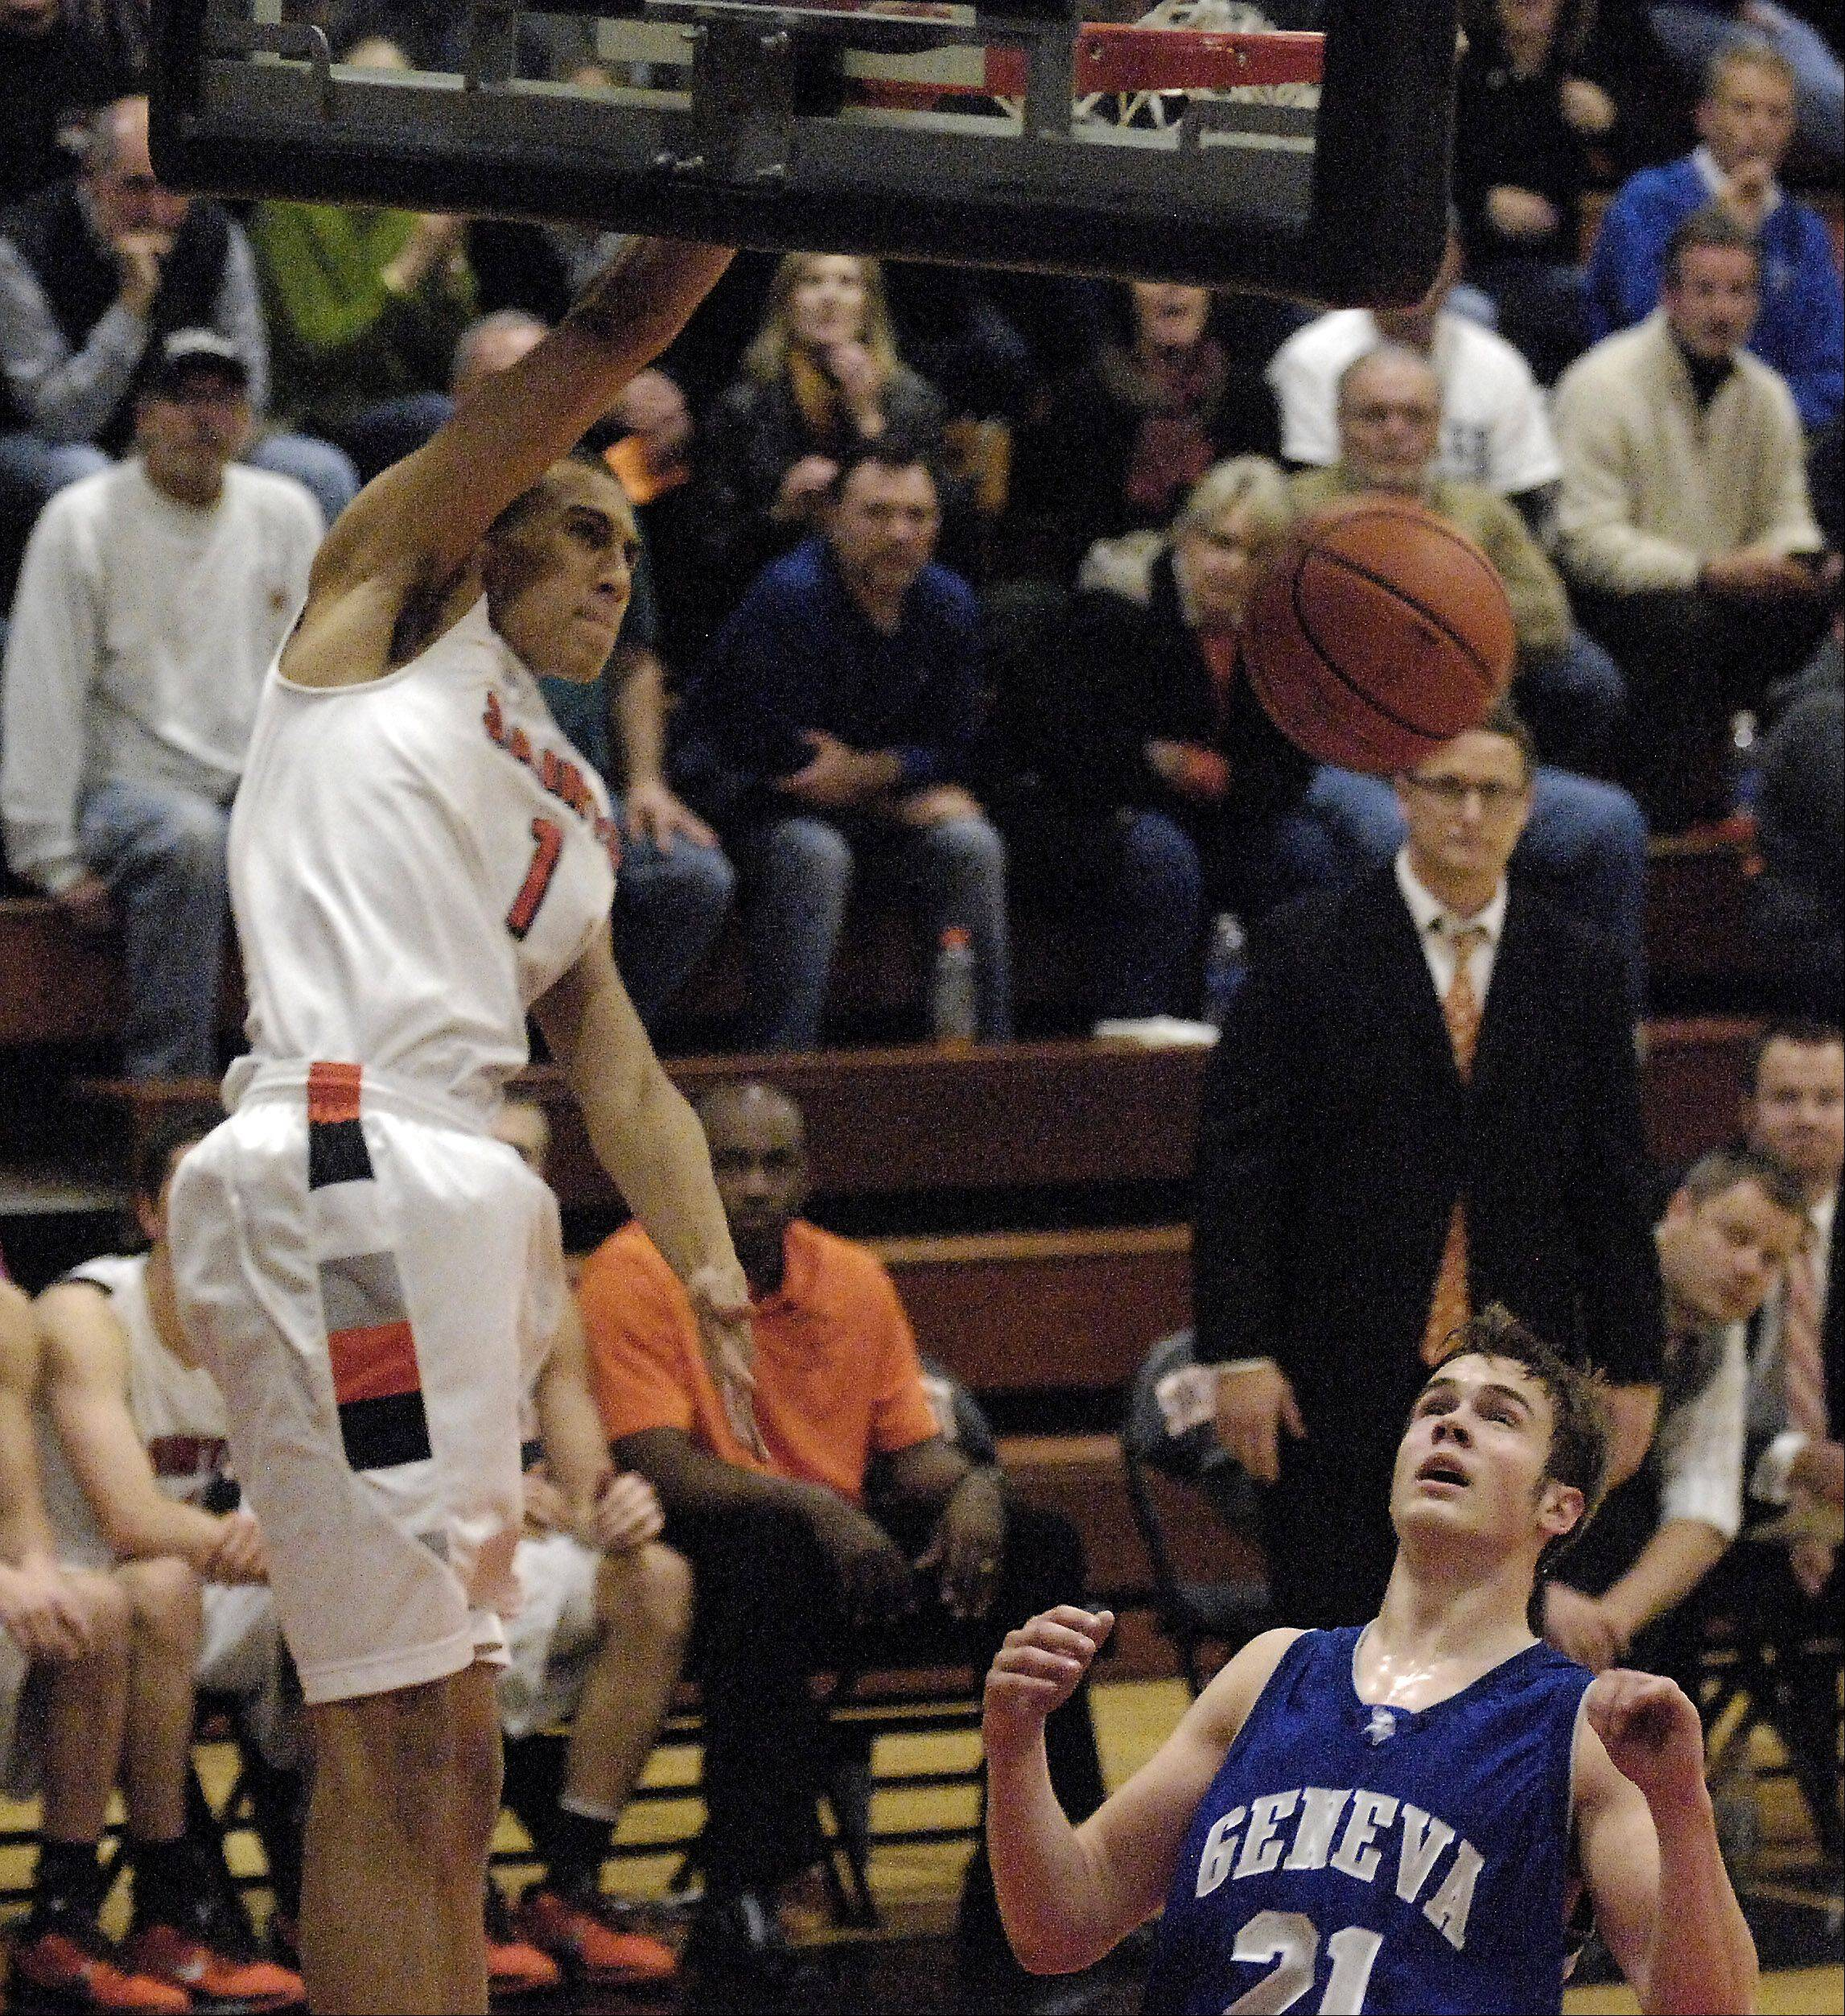 Geneva's Mike Trimble watches as St. Charles East's AJ Washington throws down a dunk.